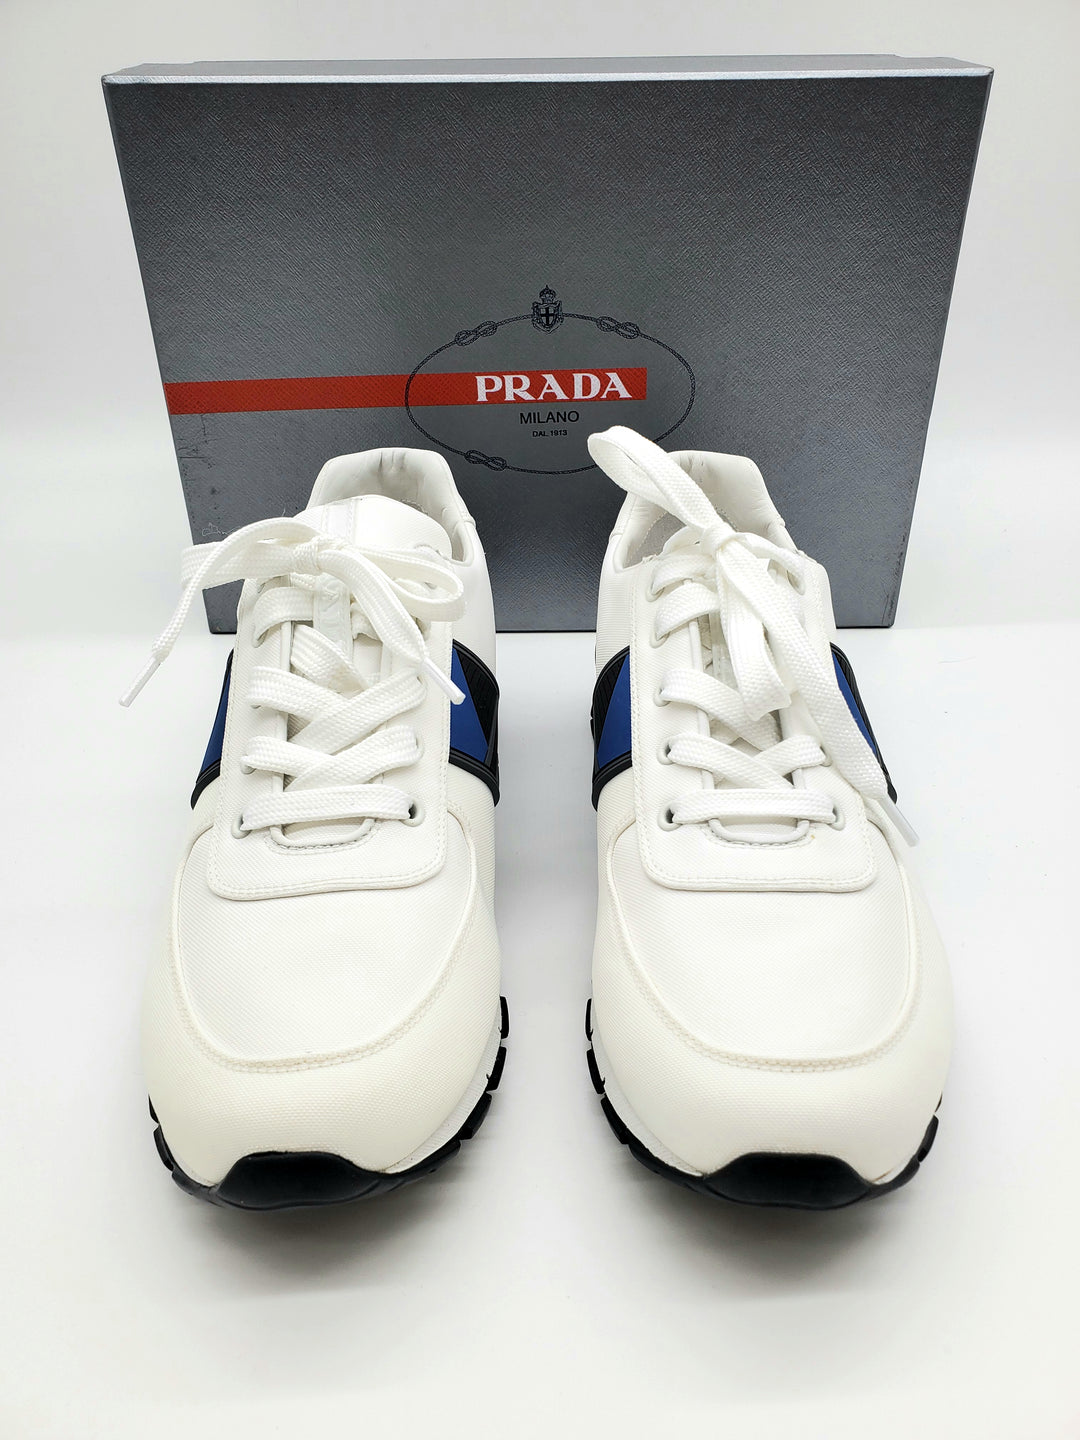 Primary Photo - BRAND: PRADA <BR>STYLE: SHOES ATHLETIC MEN'S <BR>COLOR: WHITE <BR>SIZE: 10 <BR>SKU: 262-26275-65057<BR>AS IS <BR>DESIGNER ITEM FINAL SALE